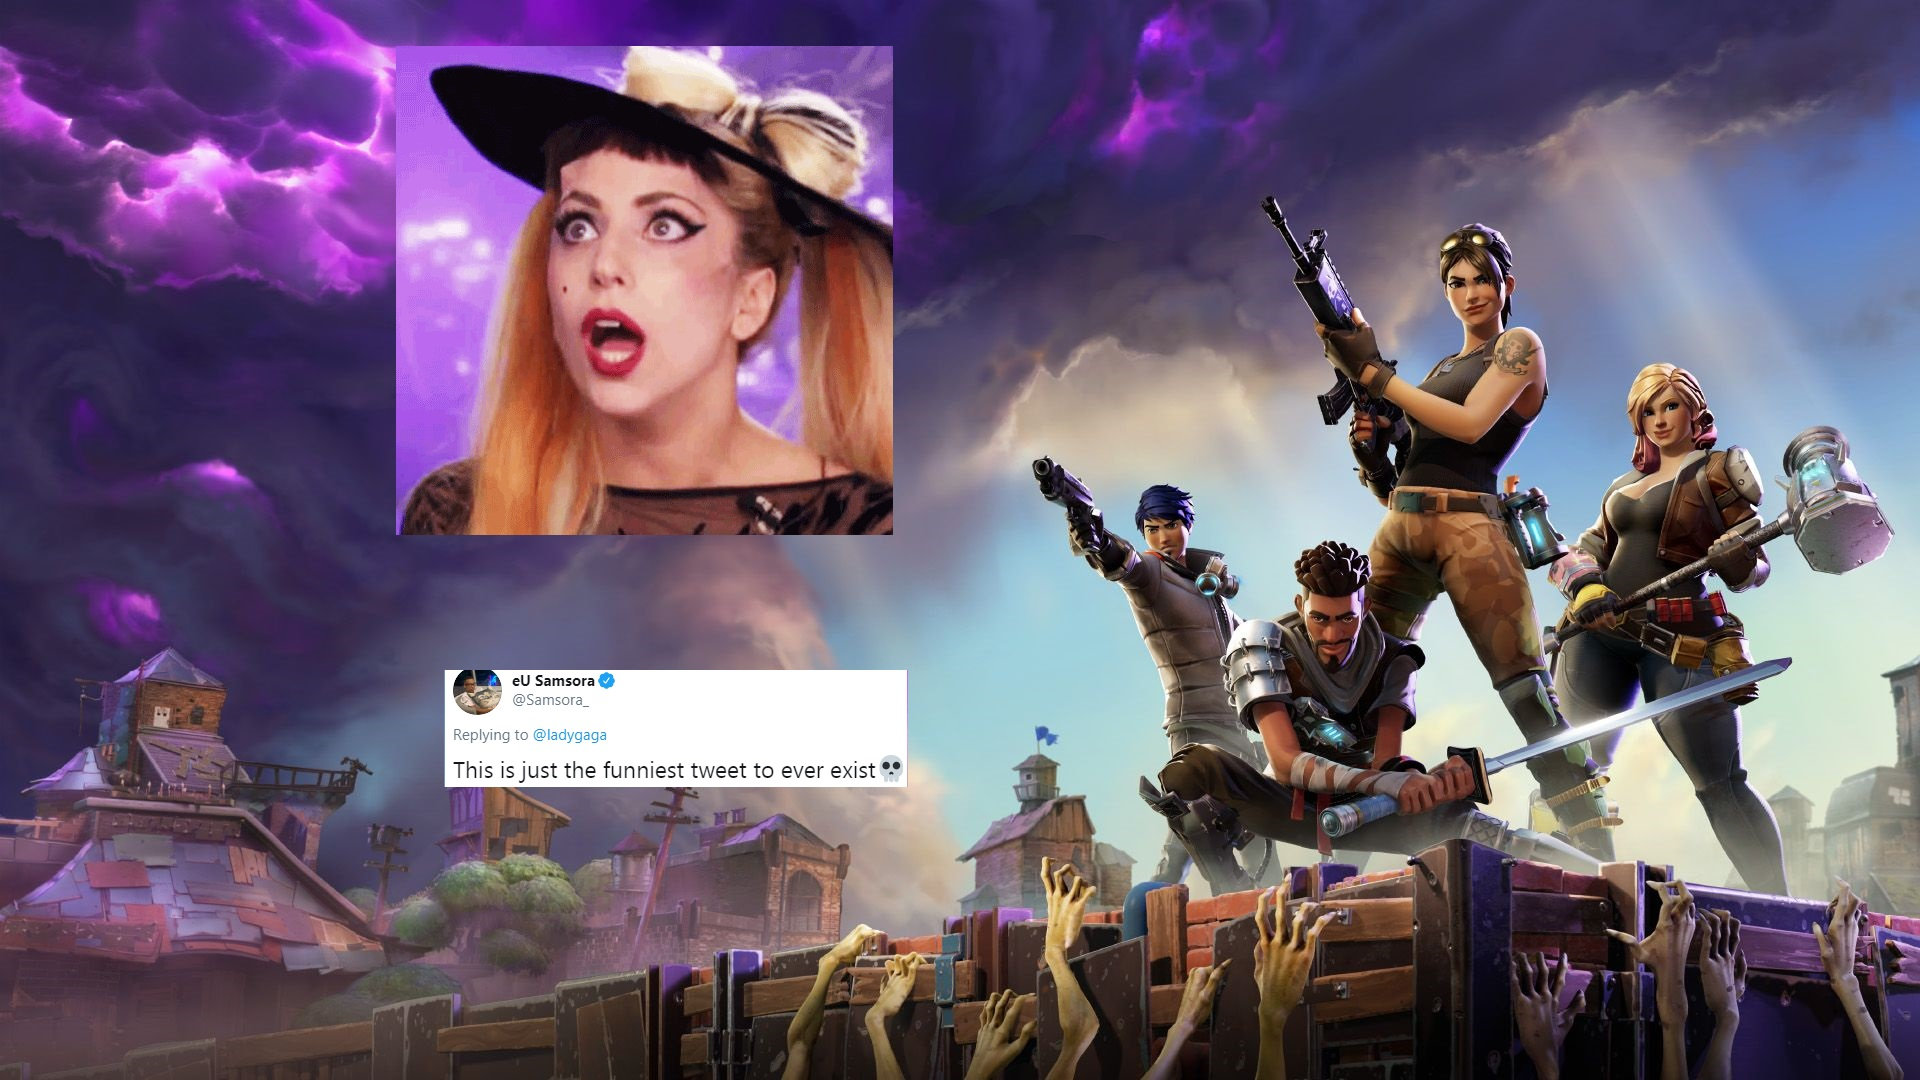 Lady Gaga Got Trolled After Her Tweet